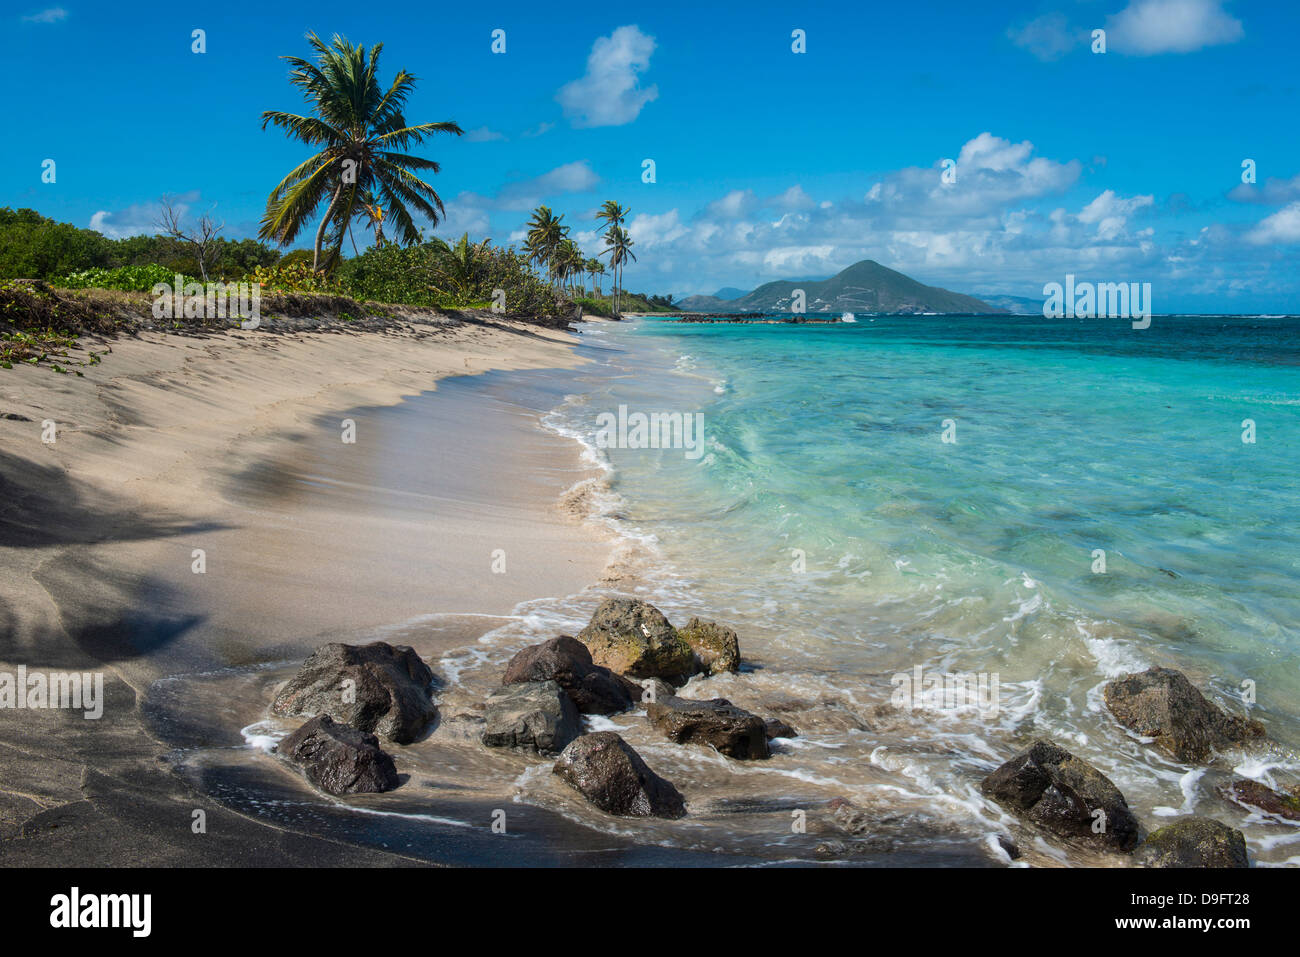 Beach at Long Haul Bay, Nevis Island, St. Kitts and Nevis, Leeward Islands, West Indies, Caribbean - Stock Image